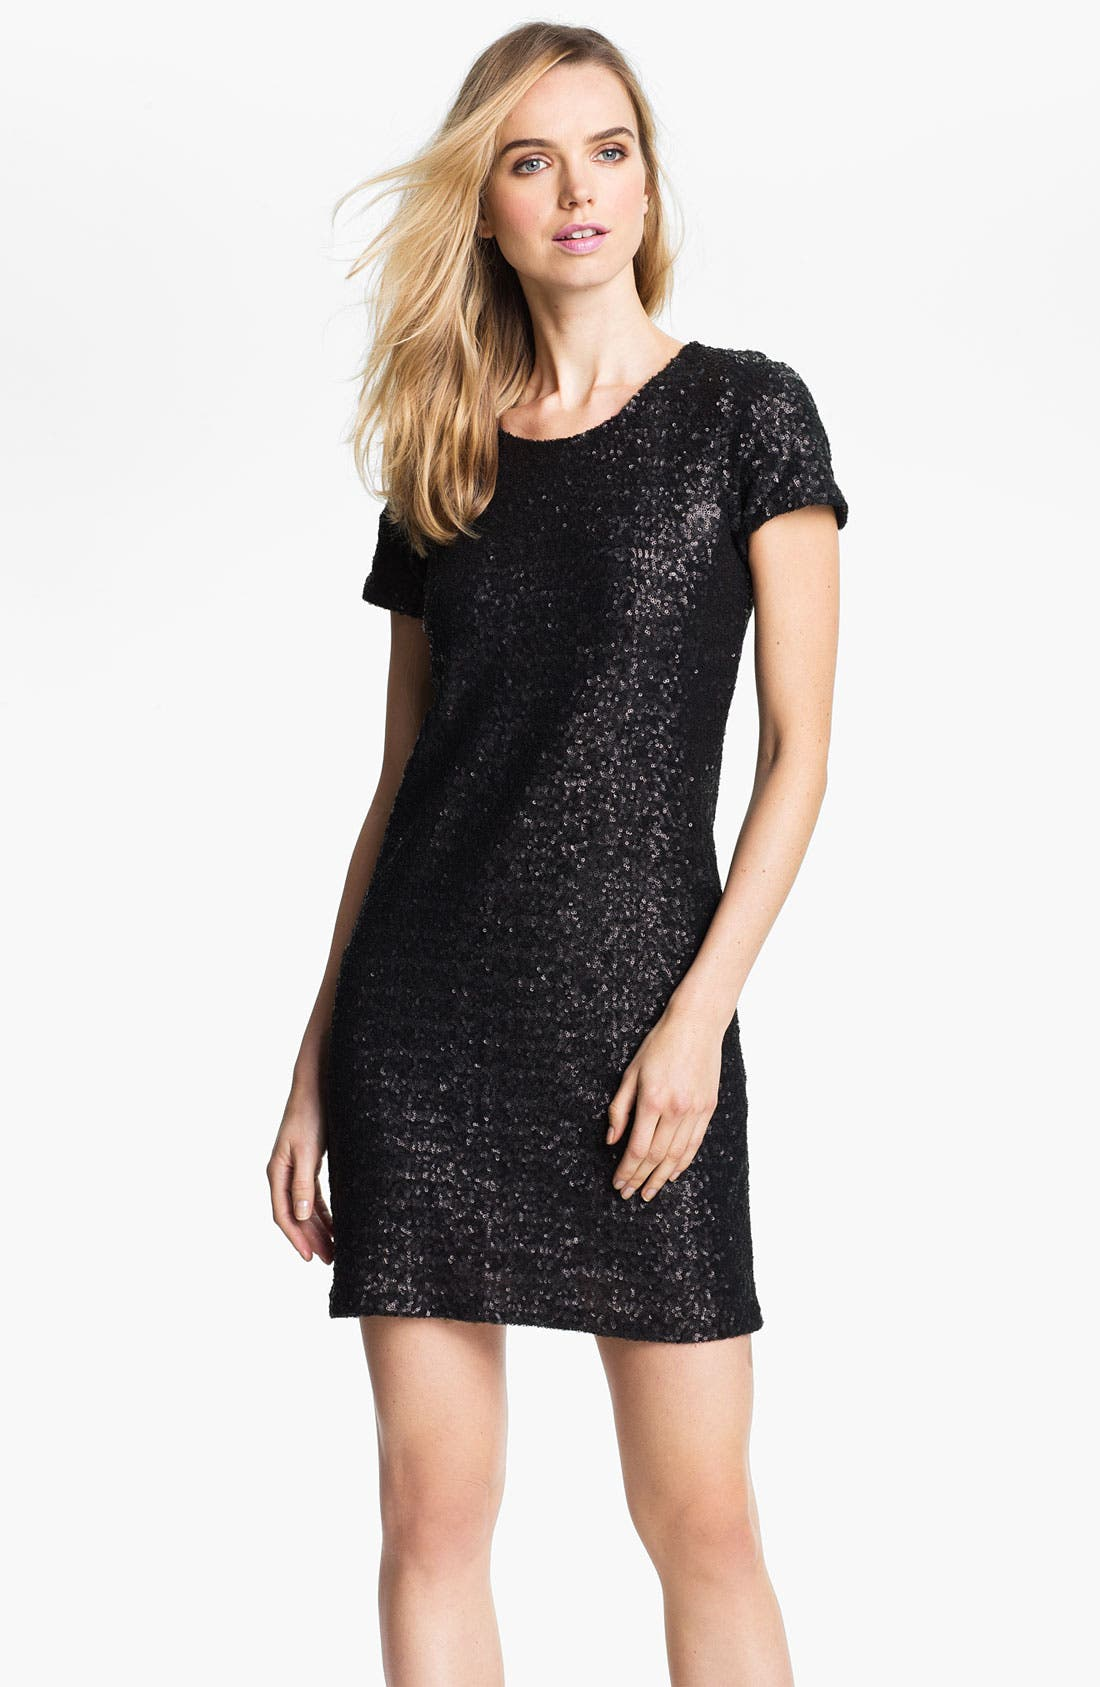 Alternate Image 1 Selected - Velvet by Graham & Spencer Sequin T-Shirt Dress